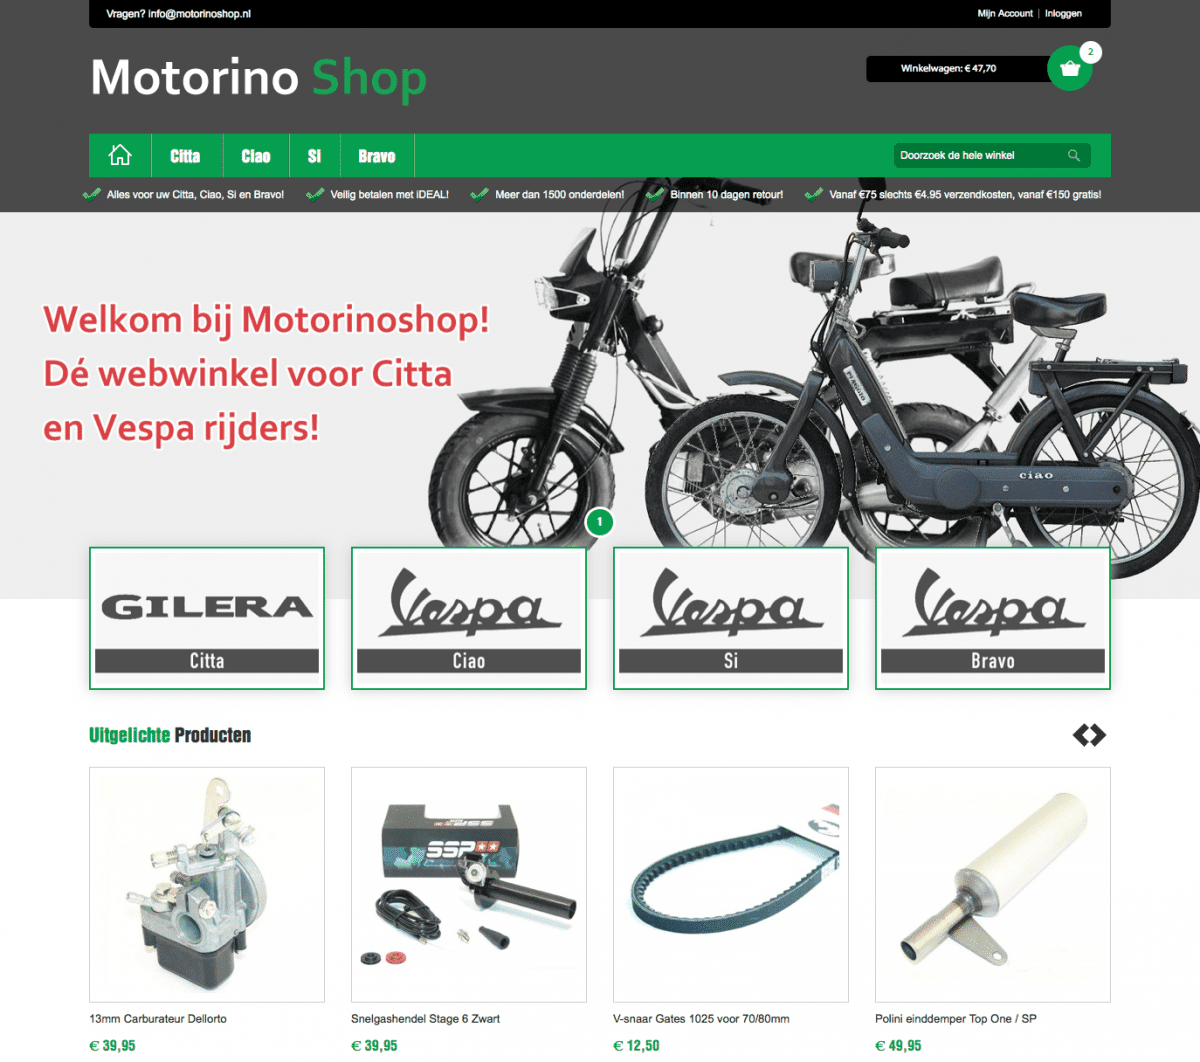 Motorinoshop